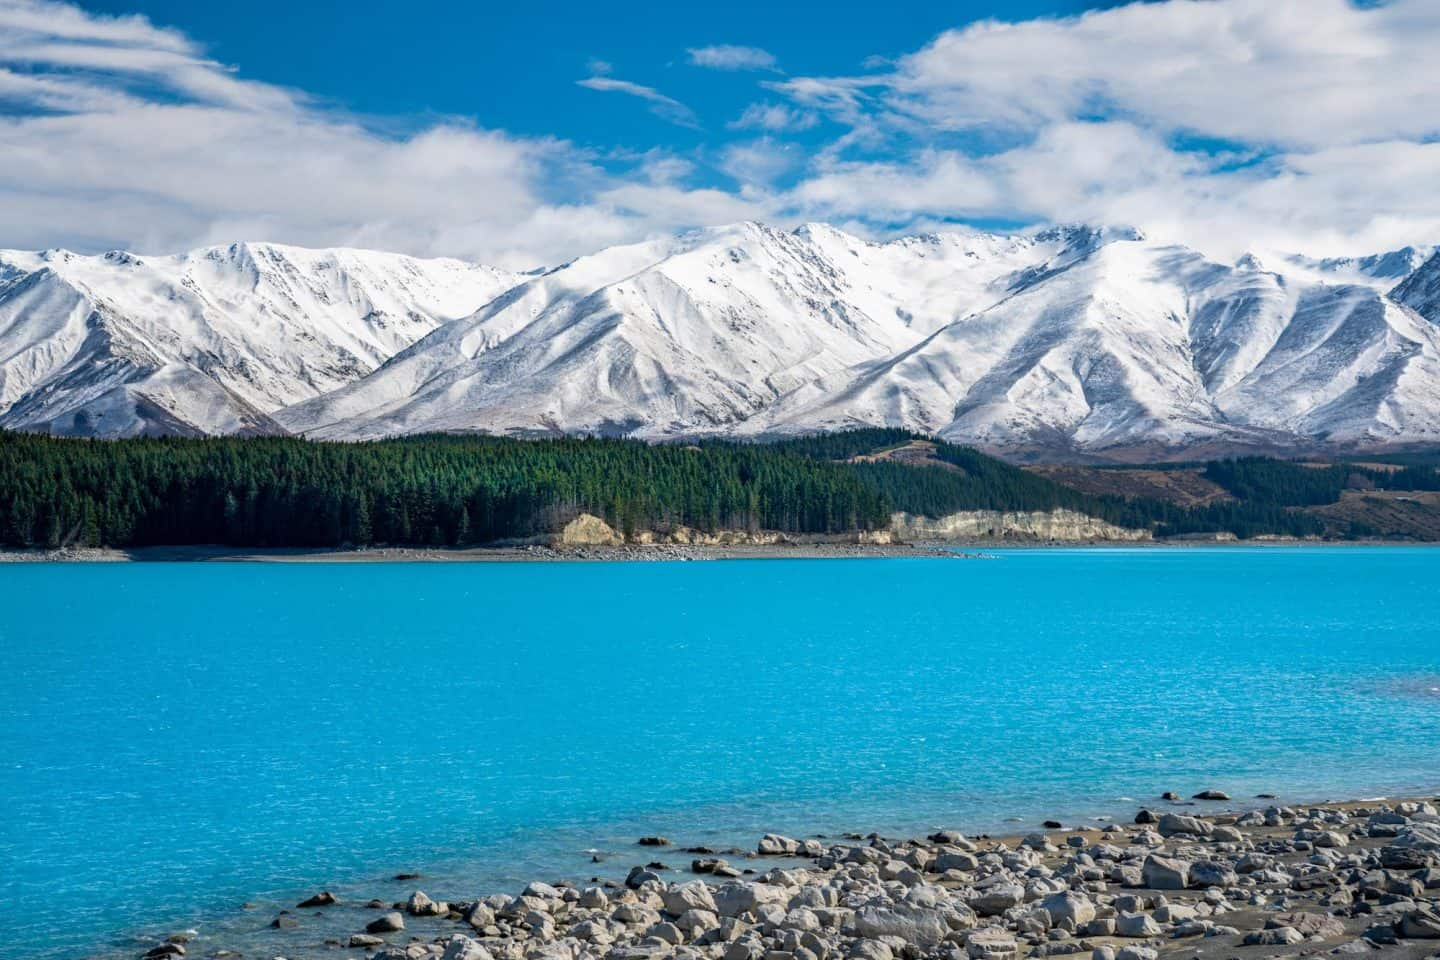 NZ landscape photographers will not be able to put their cameras away when they encounter the impossibly blue waters of Lake Pukaki.